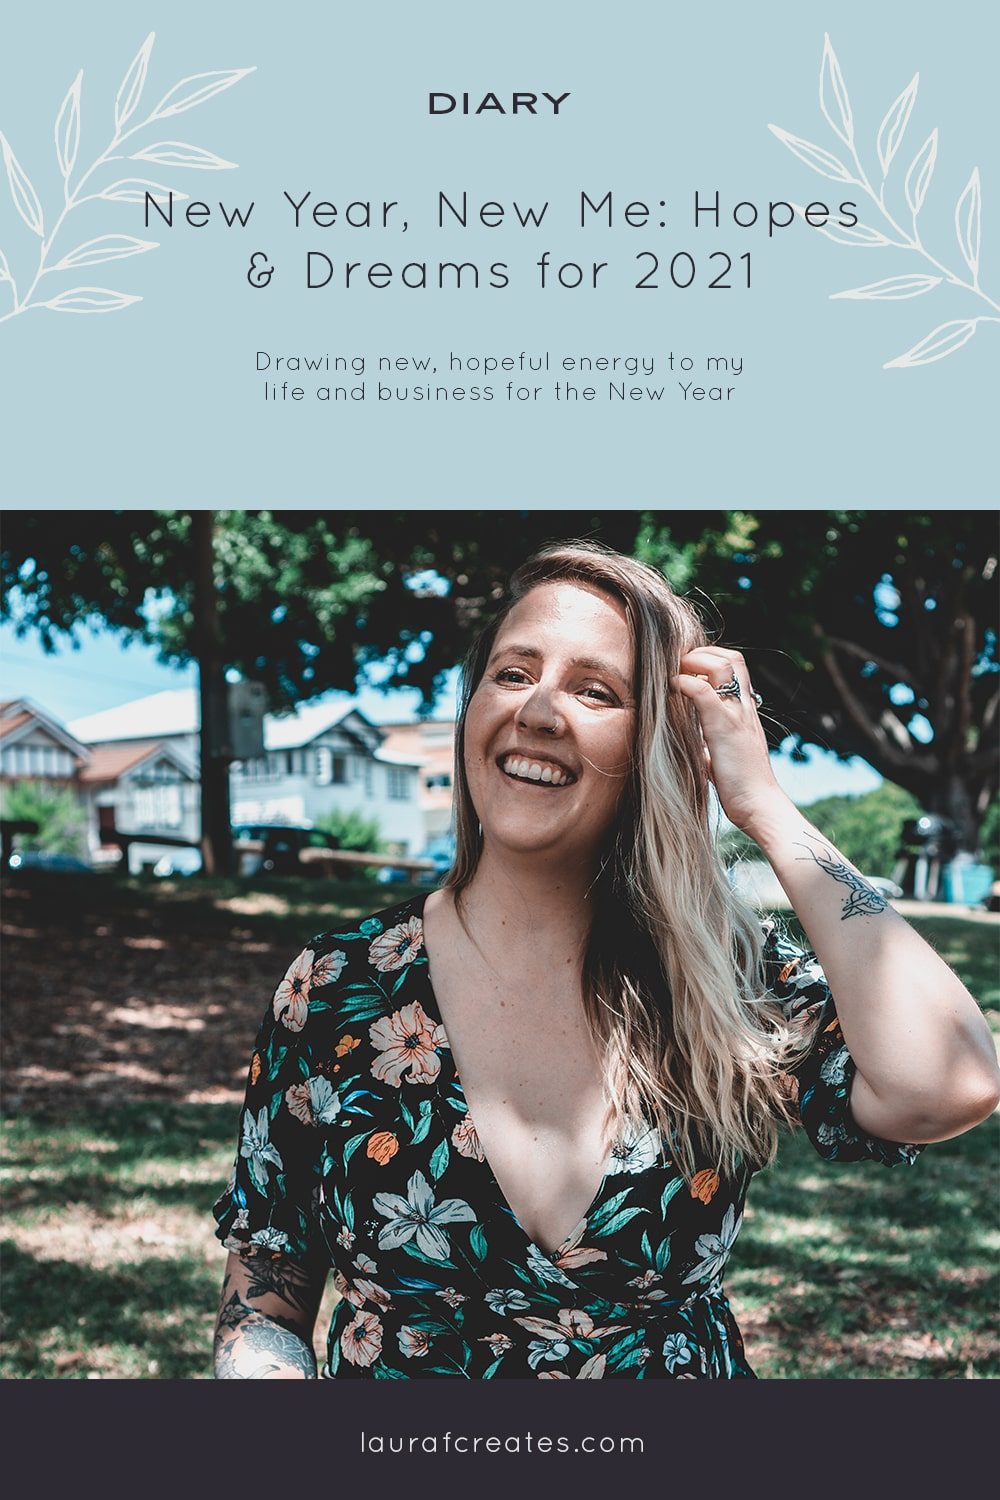 New Year, New Me: Hopes and Dreams for 2021